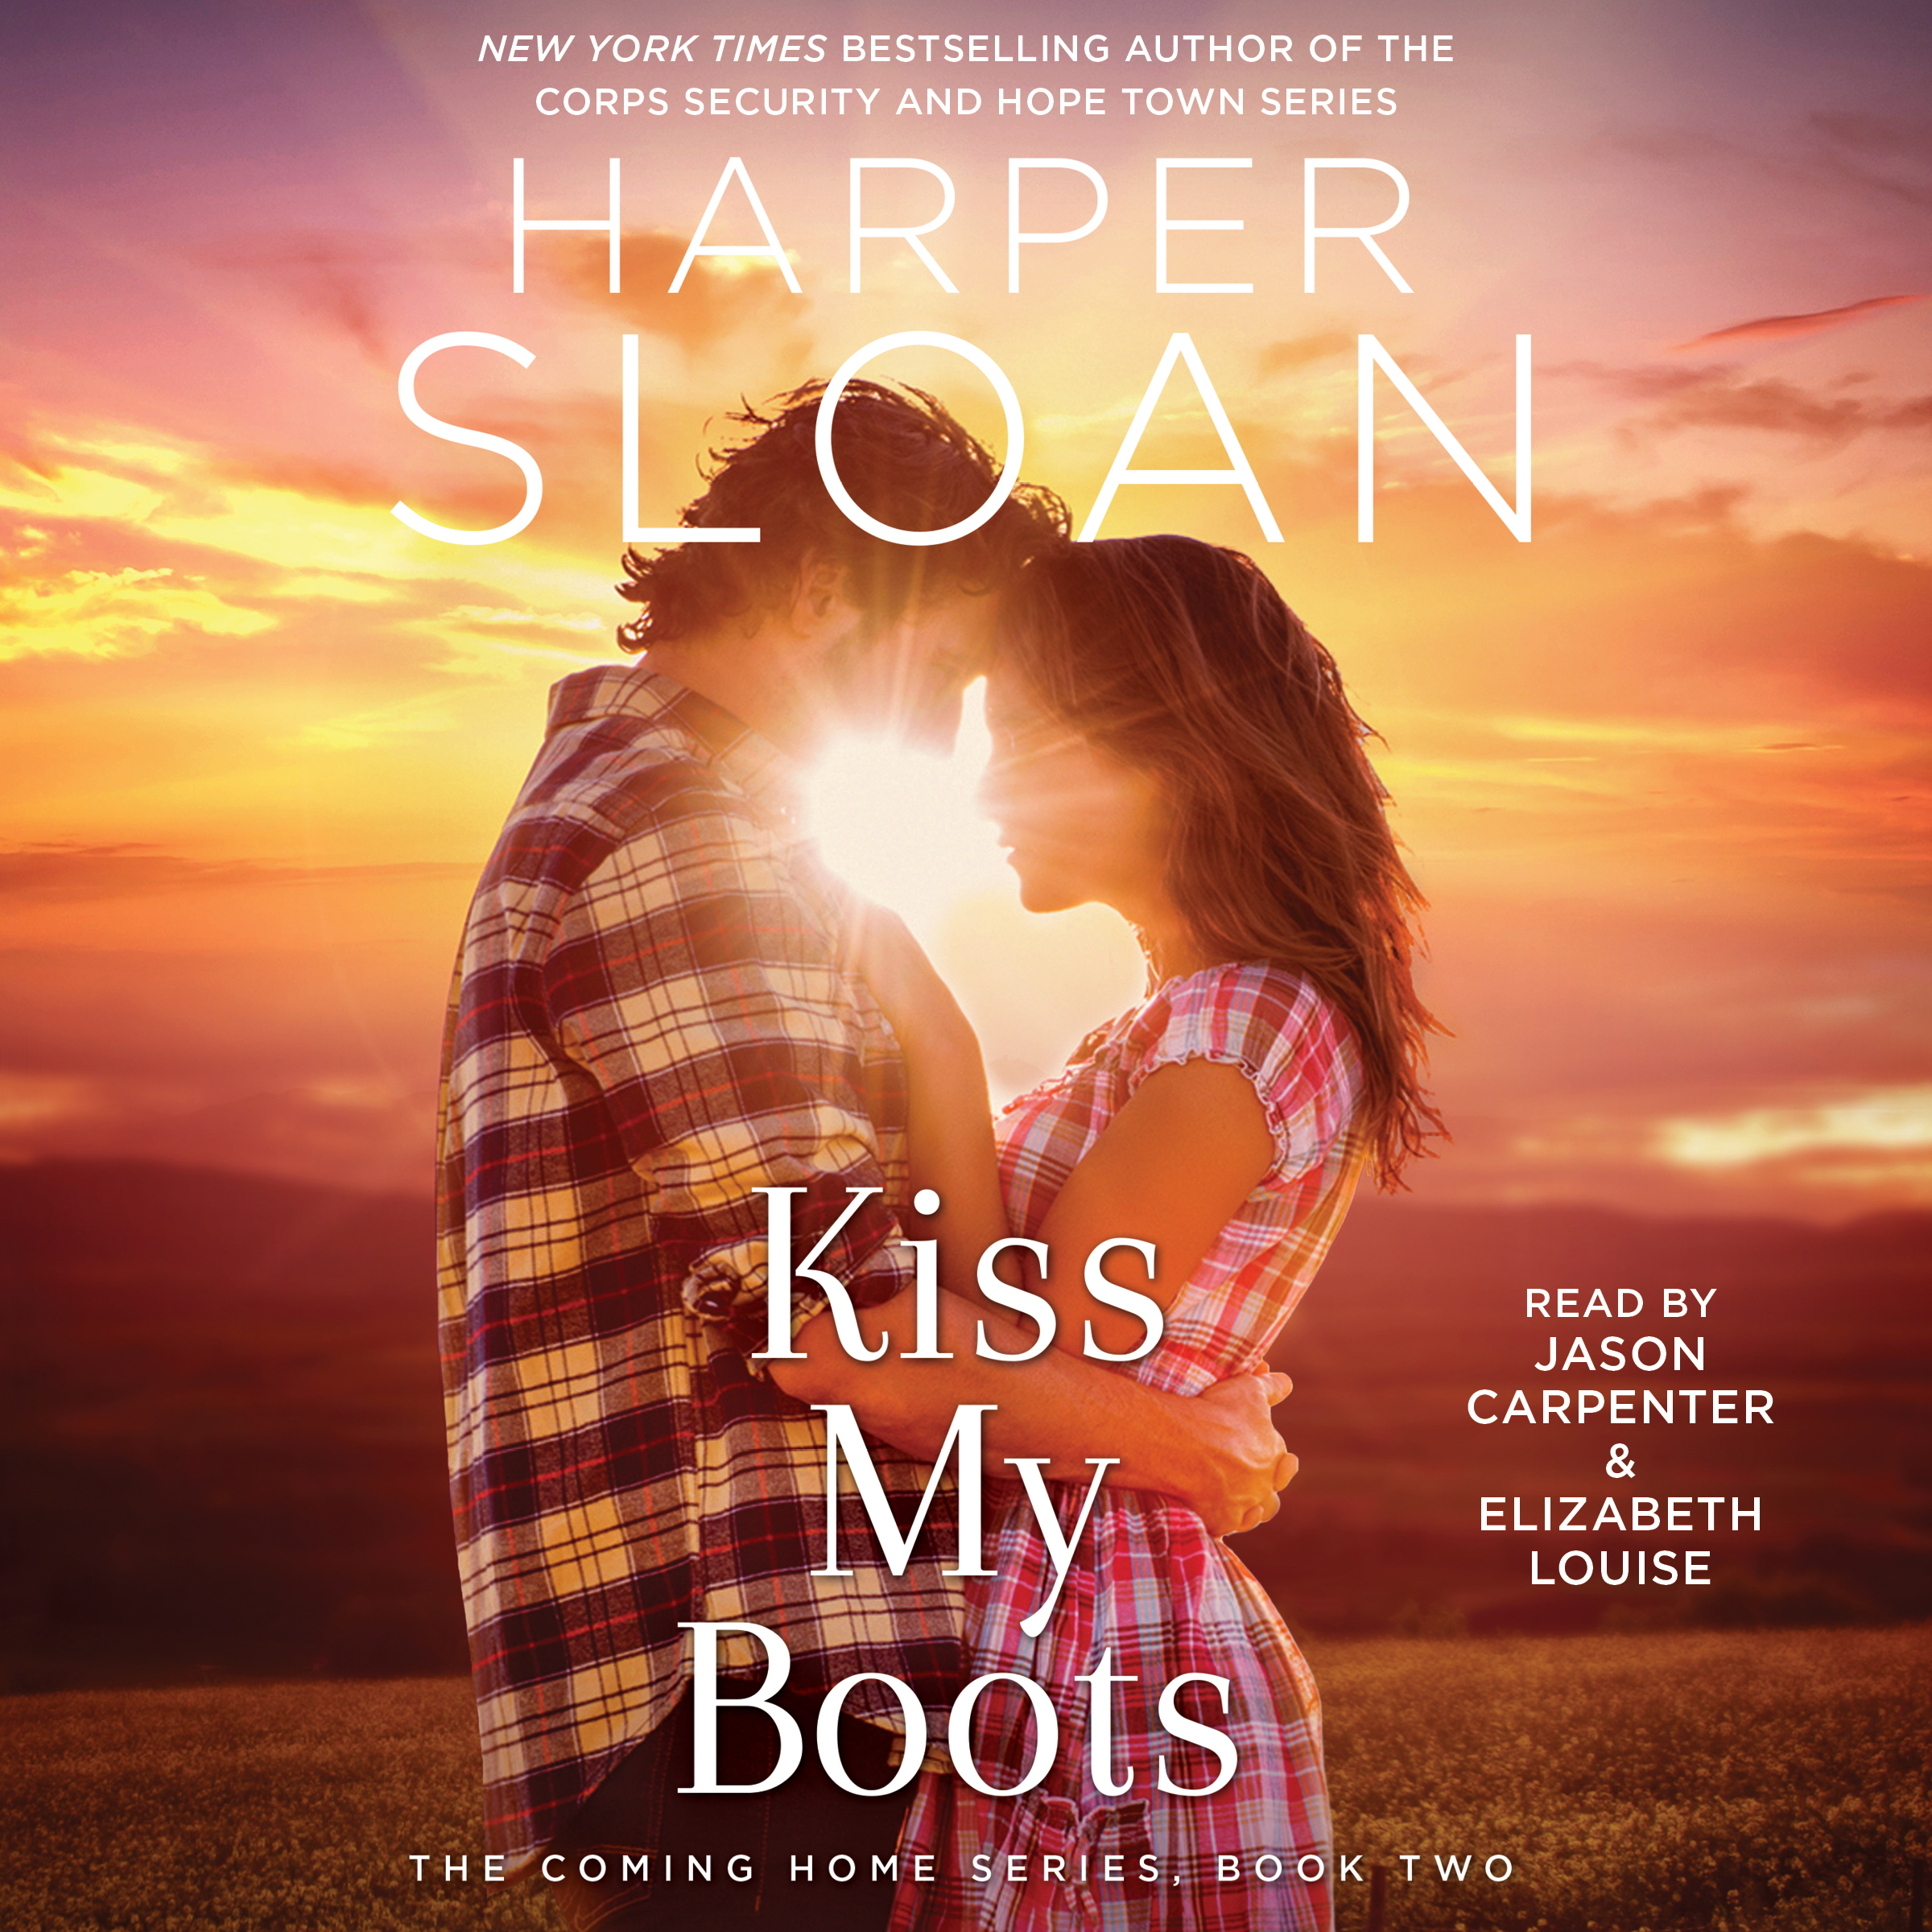 Kiss My Boots Audiobook By Harper Sloan Elizabeth Louise Jason